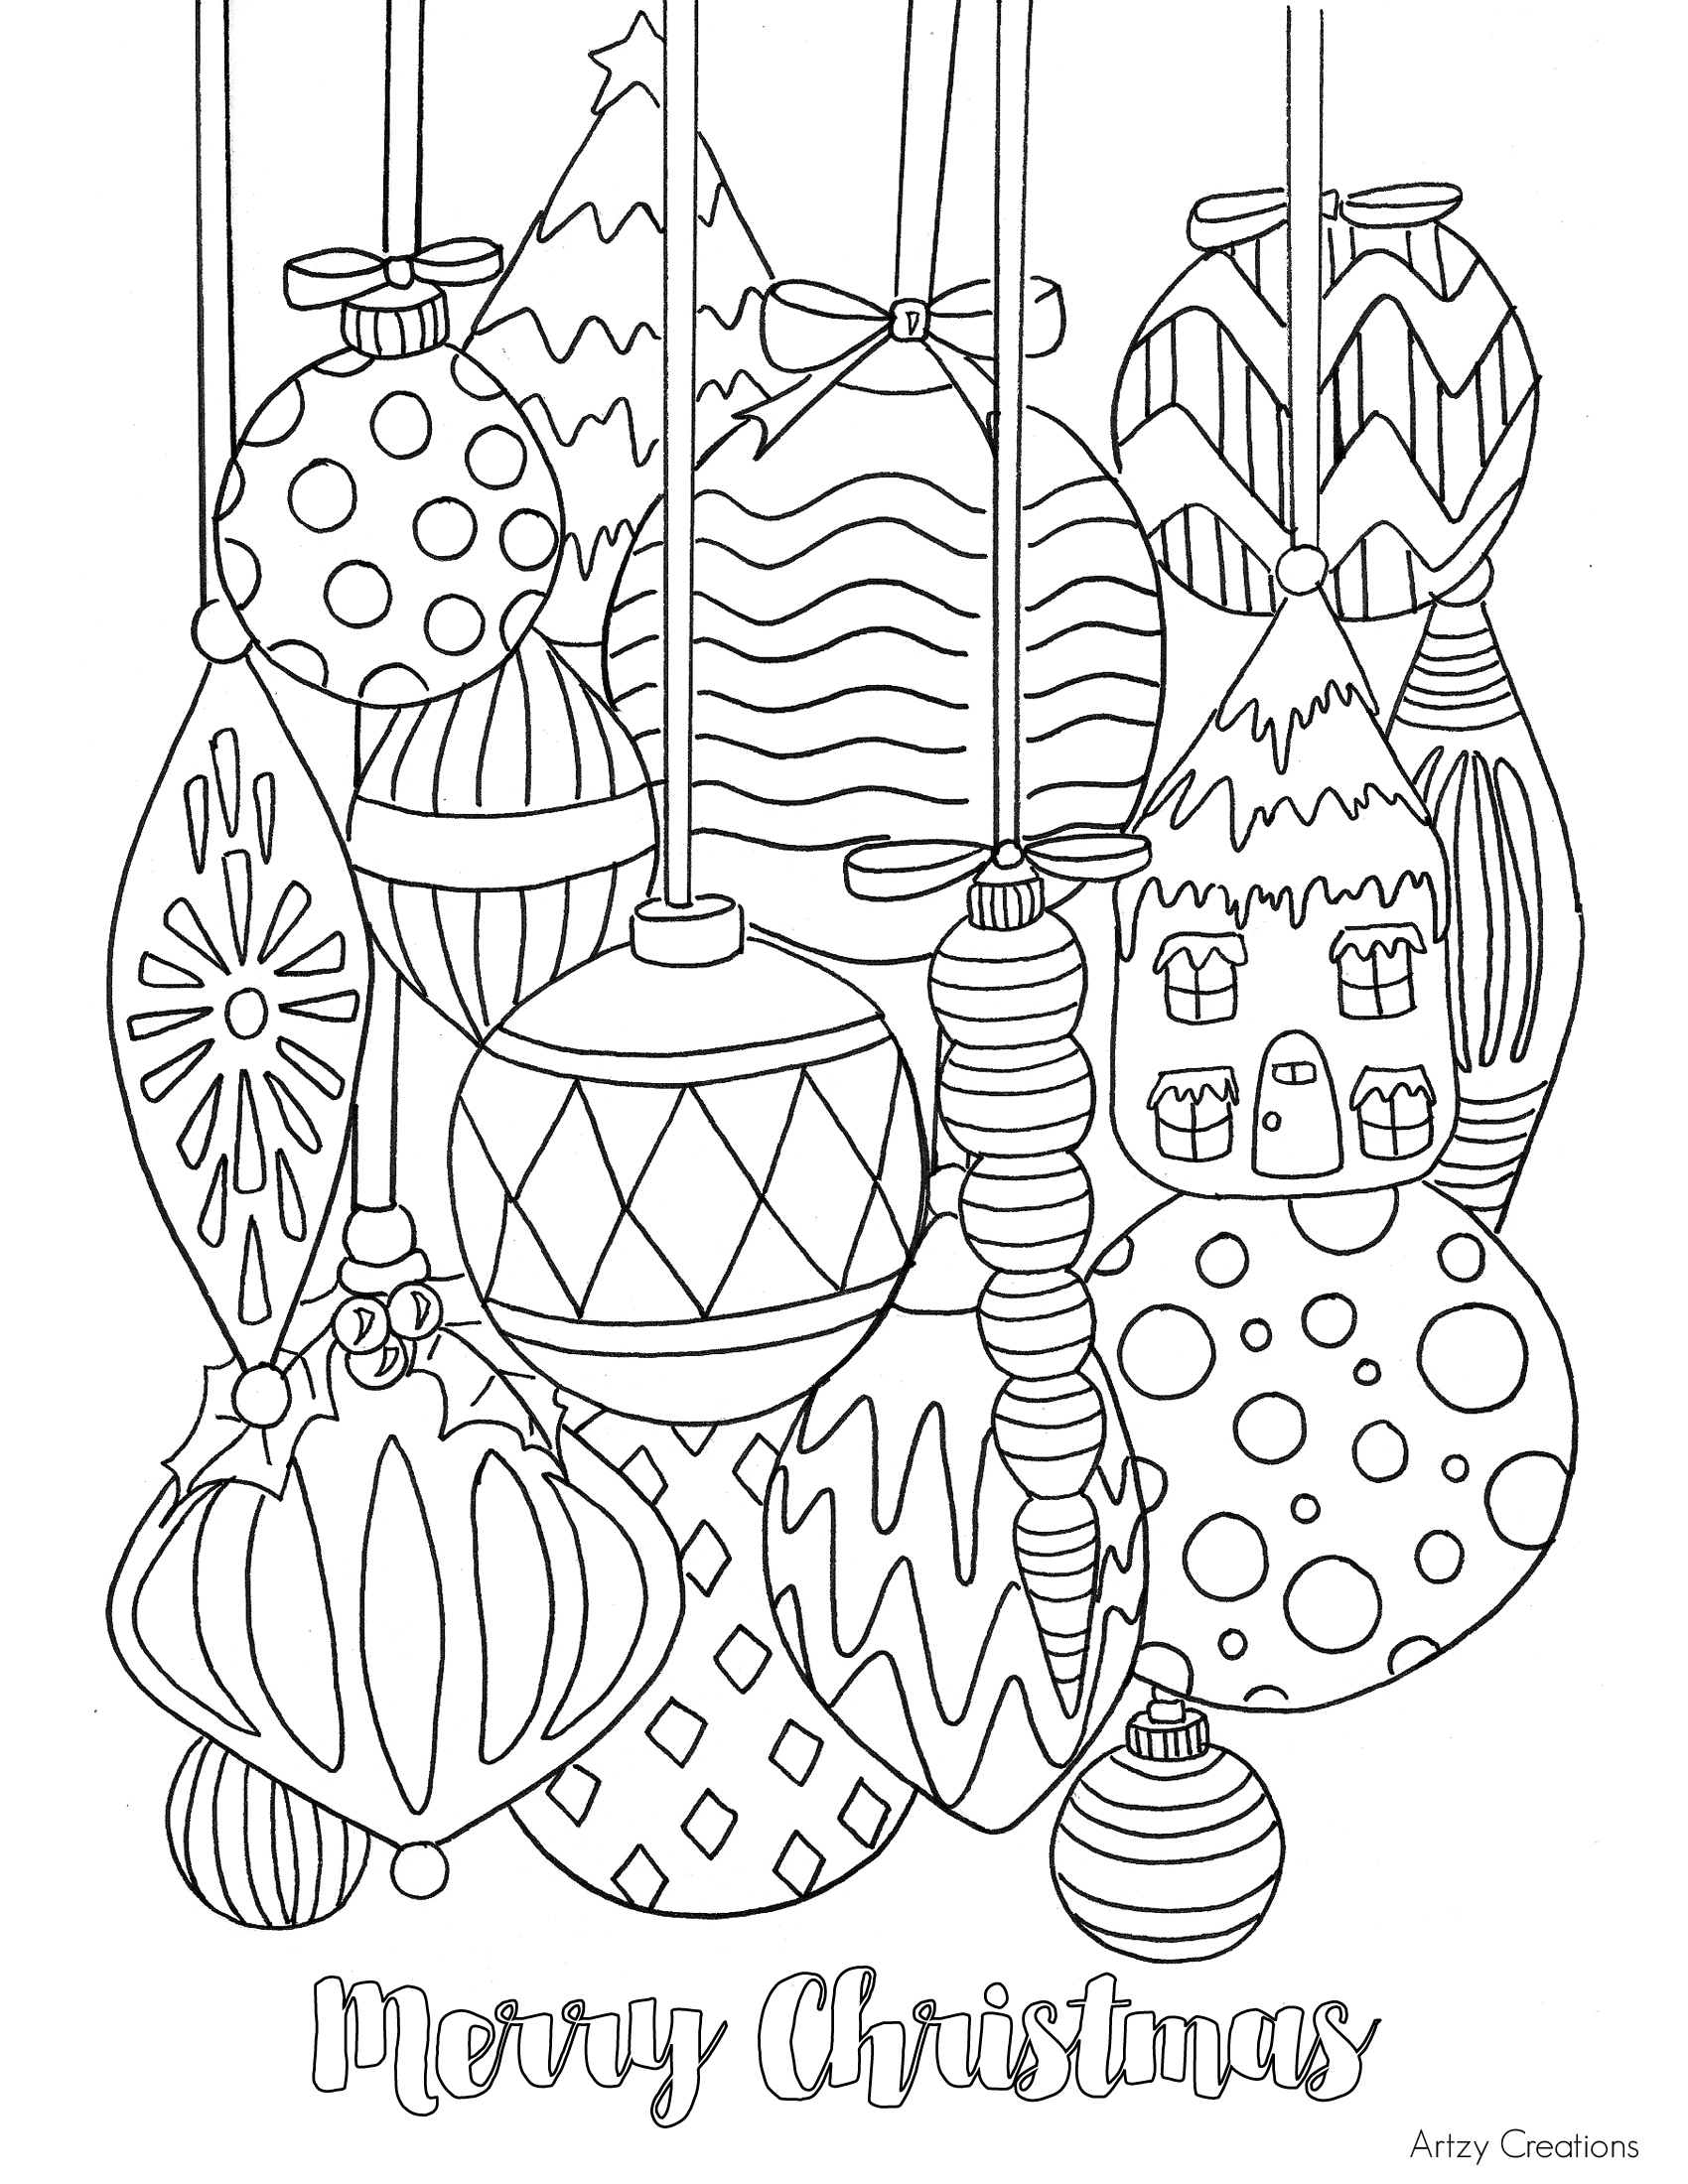 Free Christmas Ornament Coloring